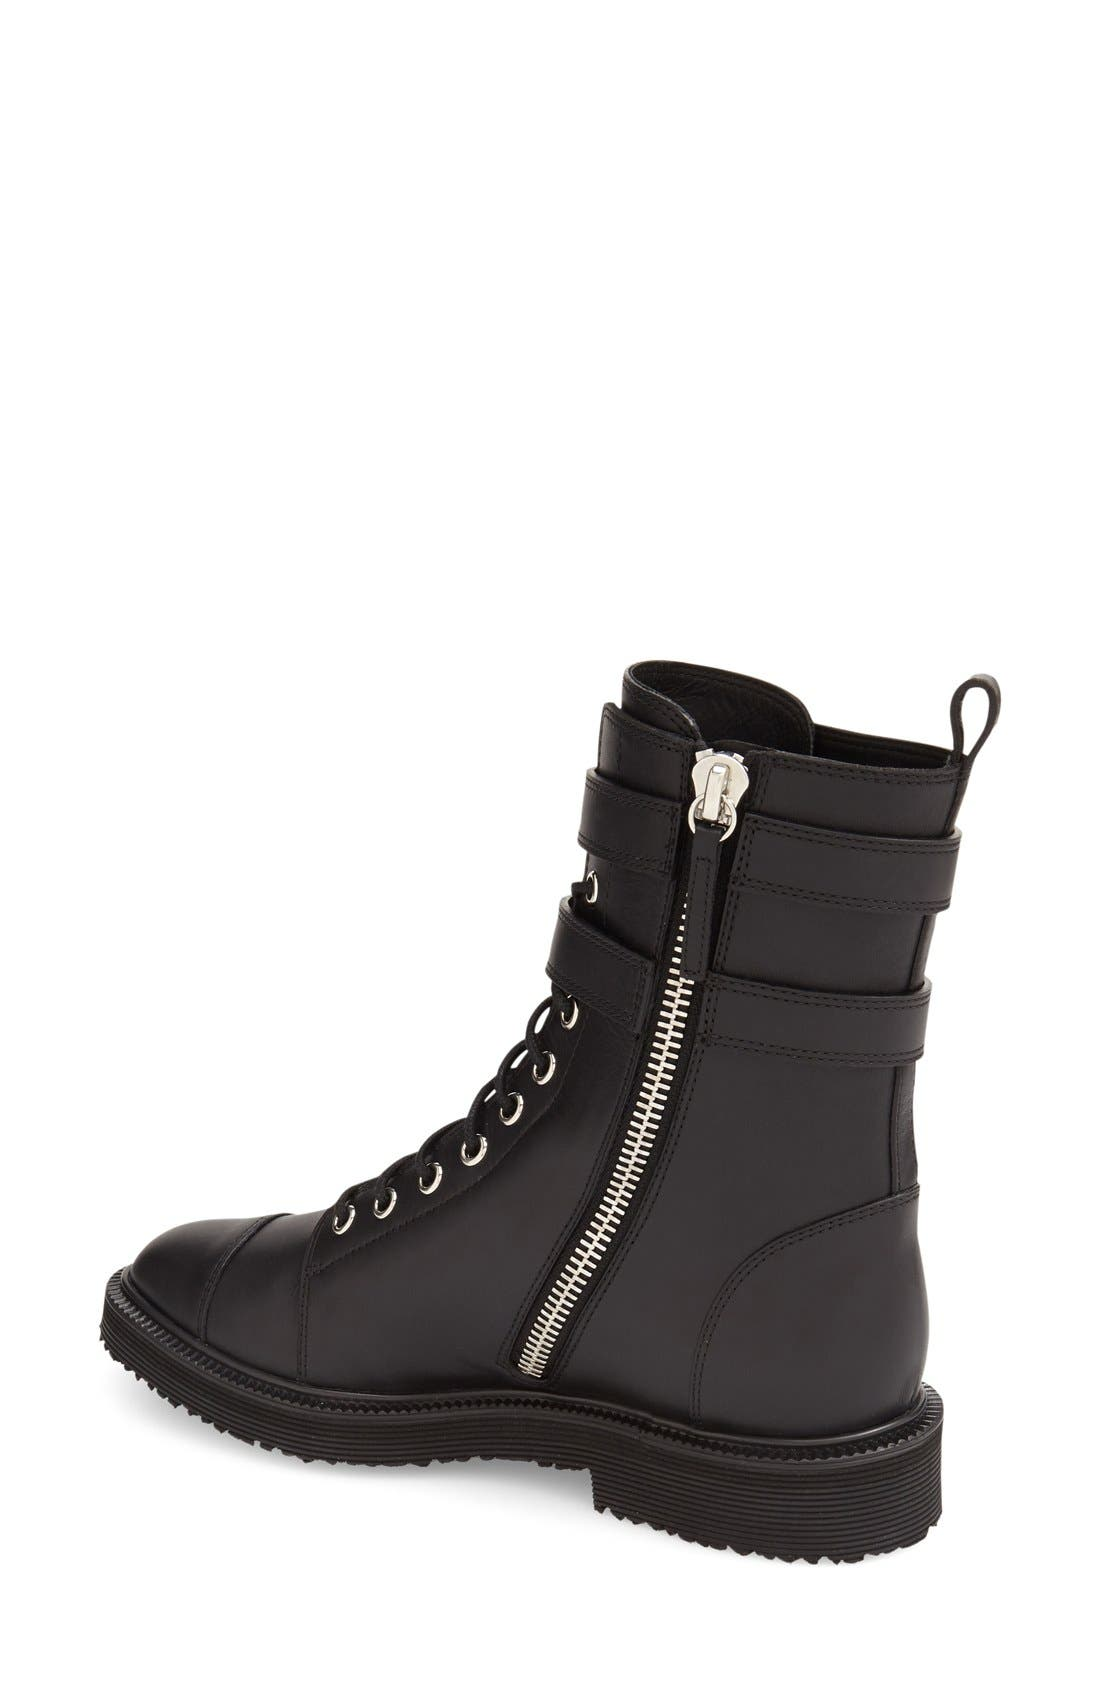 Alternate Image 2  - Giuseppe Zanotti 'Hilary' Military Boot (Women)